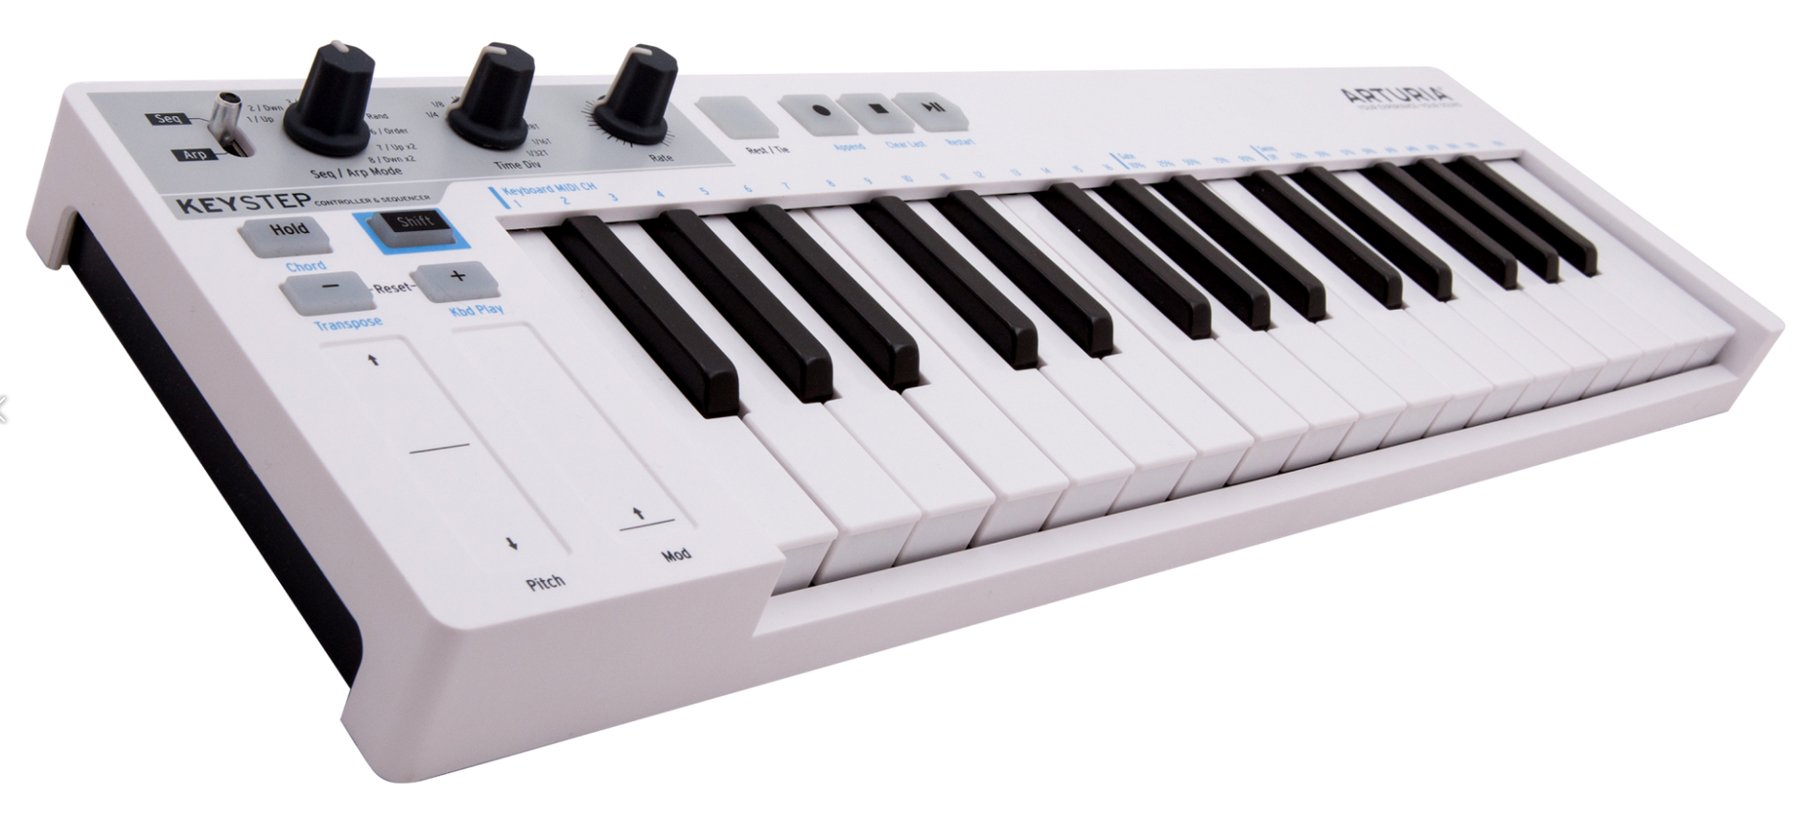 Slim 32-Key USB Controller with Sequencer & Arpeggiator